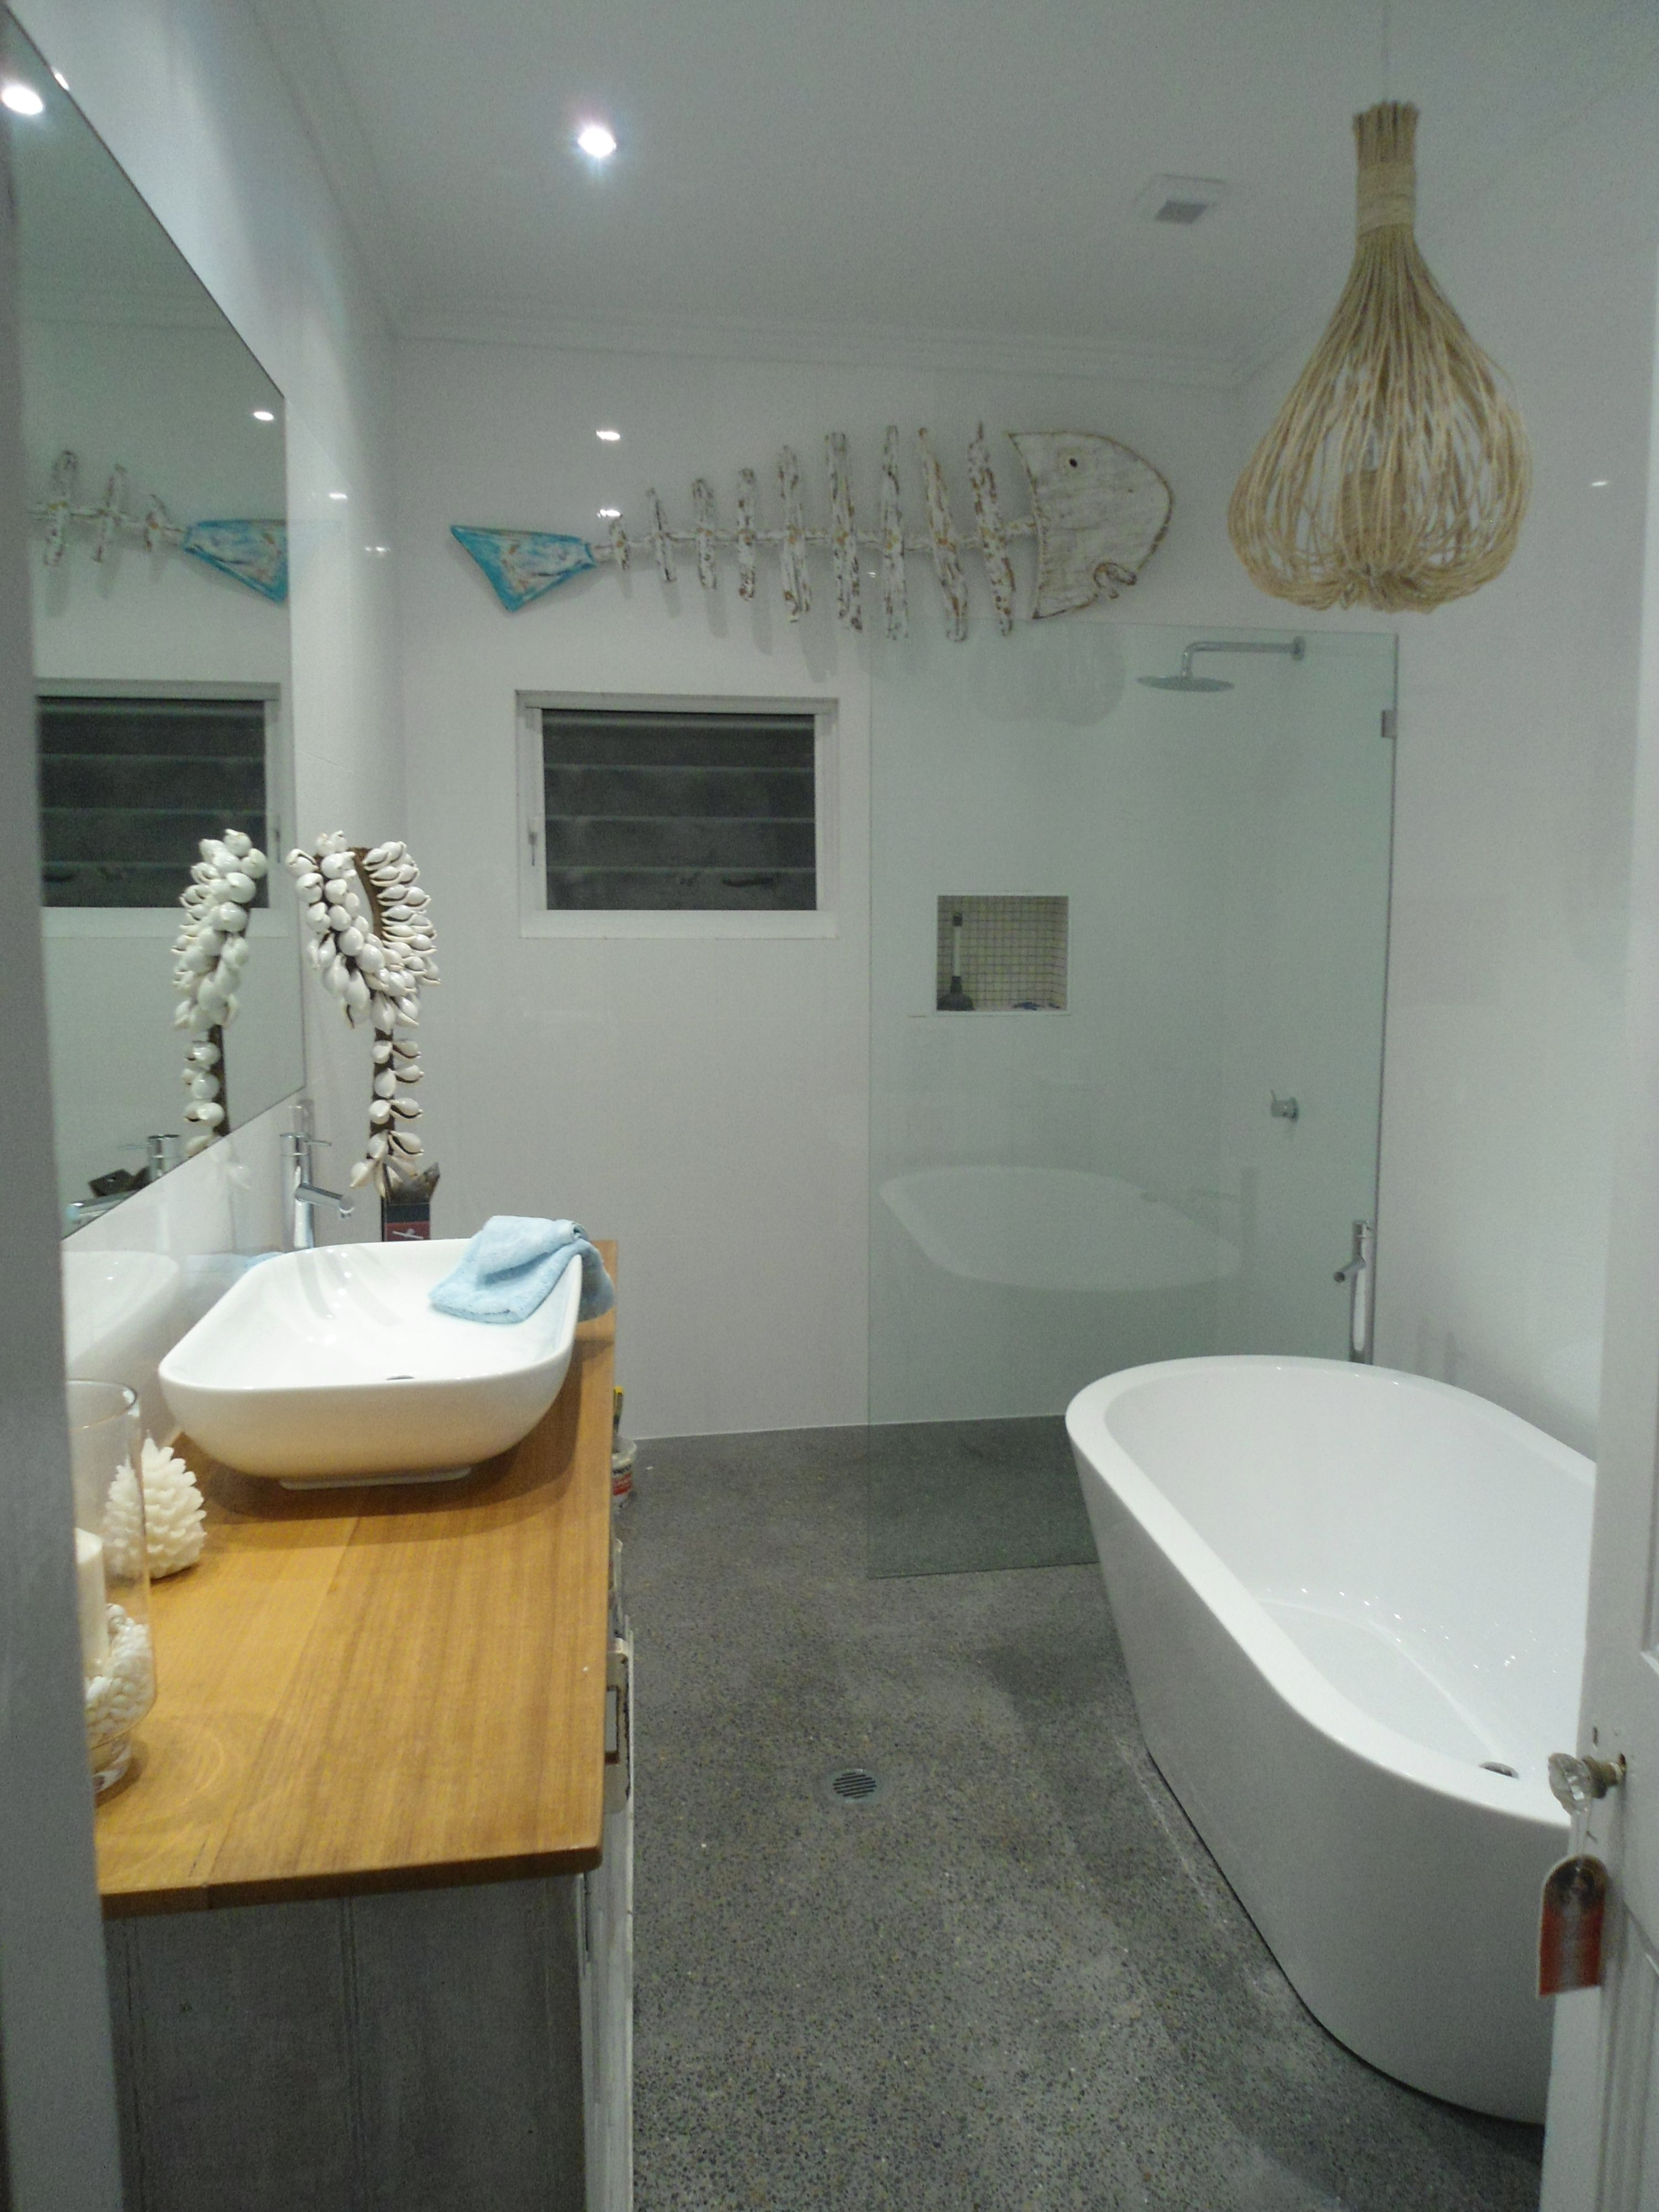 Great Layout For Separate Shower And Bath For A Small Space Bathroom